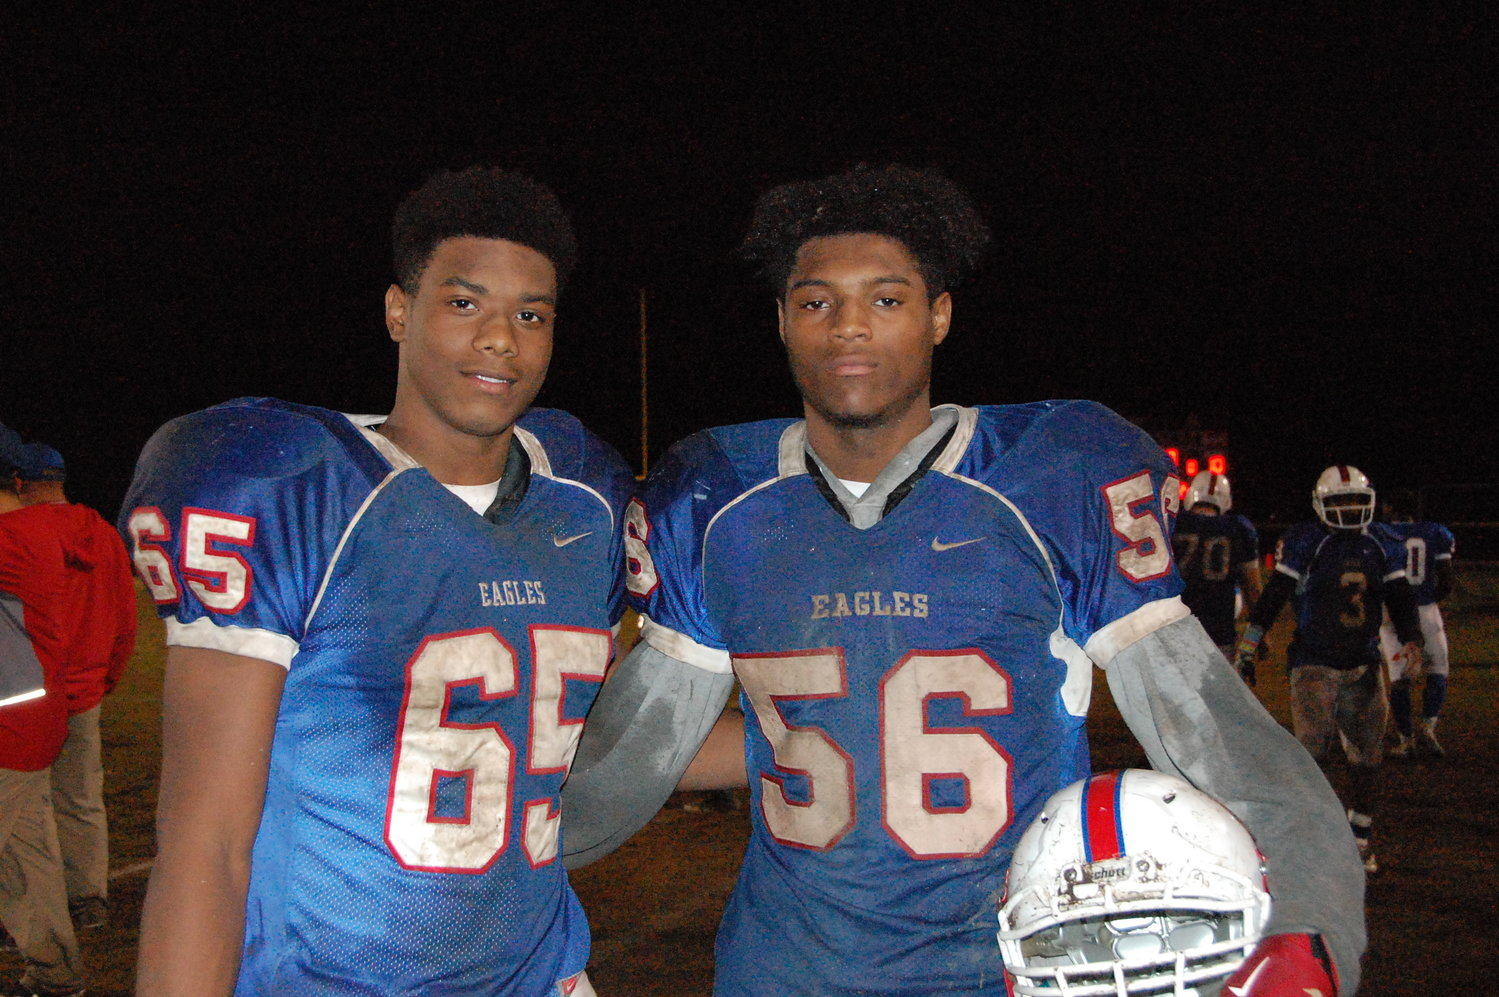 Jaysten McLean (No. 65) and Eric Bradshaw (No. 56) pose after Monday's loss to Union Pines. 'Spooking' quarterbacks and catching interceptions, these two best friends keep things fun and entertaining for Western Harnett's football team. Both standing over 6 feet tall, they are known as the 'Tall Boys' for the Eagles' Defense.